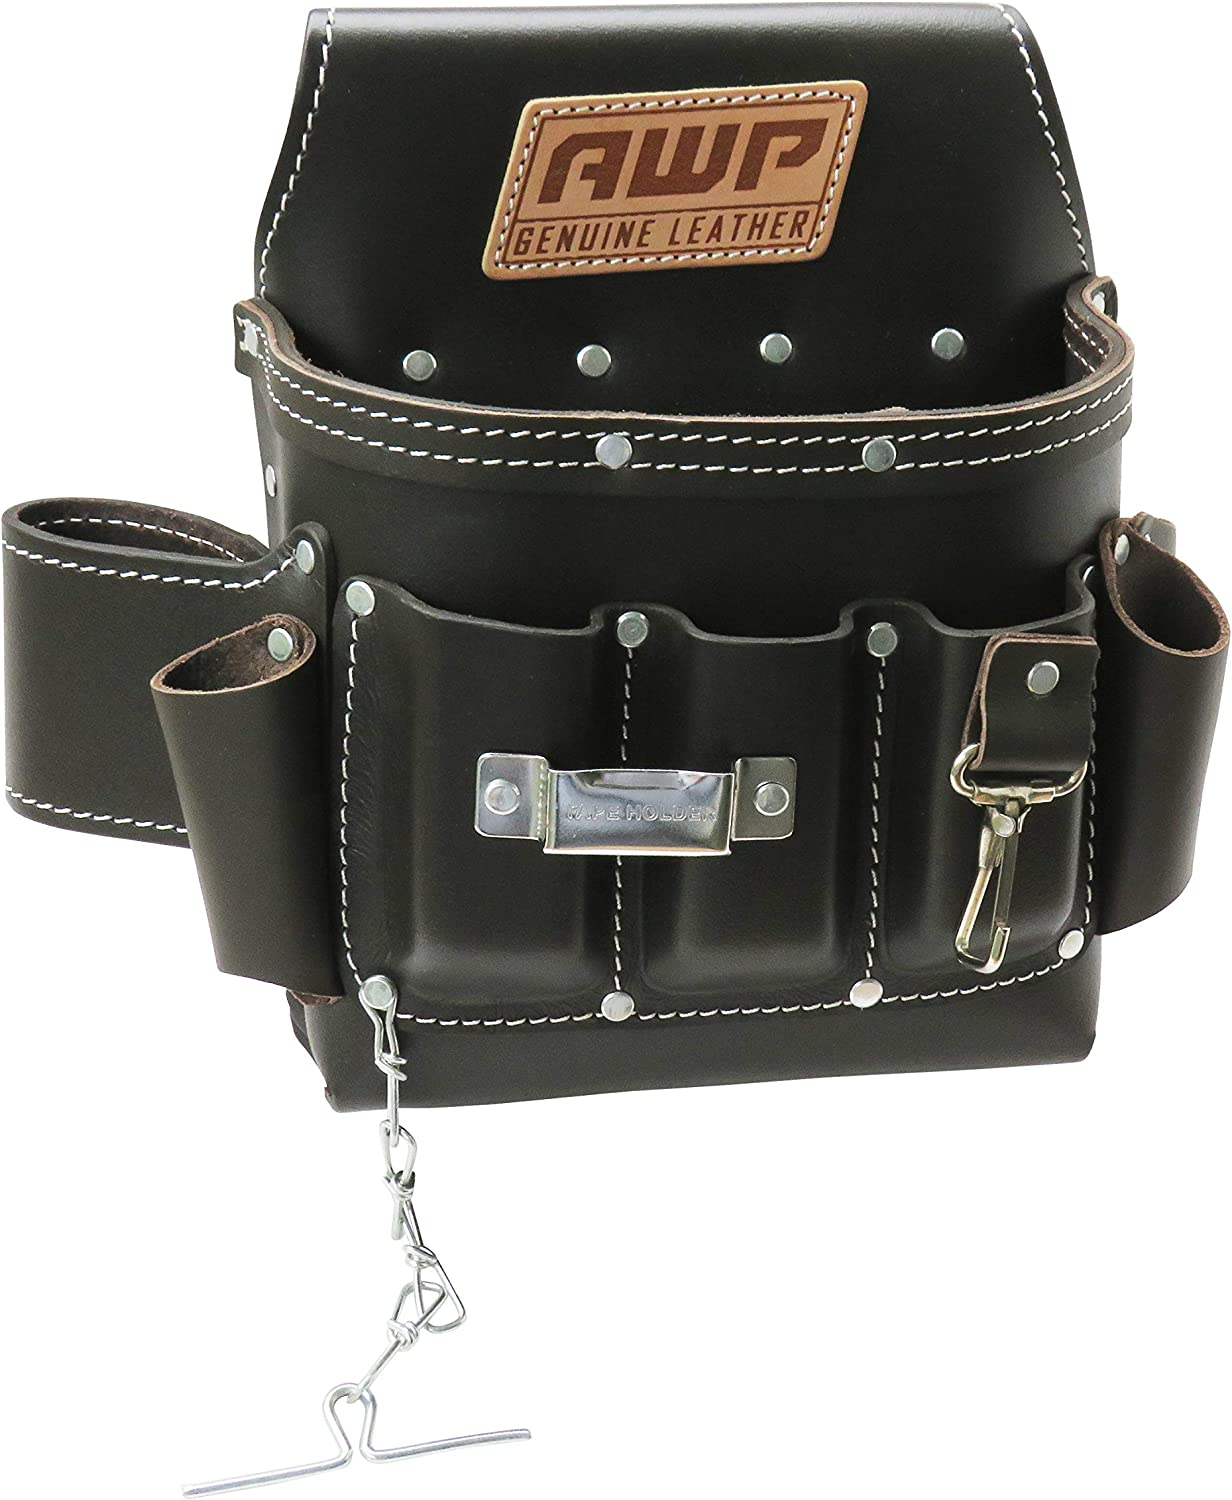 AWP Oil-Tan Leather Electrician Tool Pouch, 1LL-526-2 - -